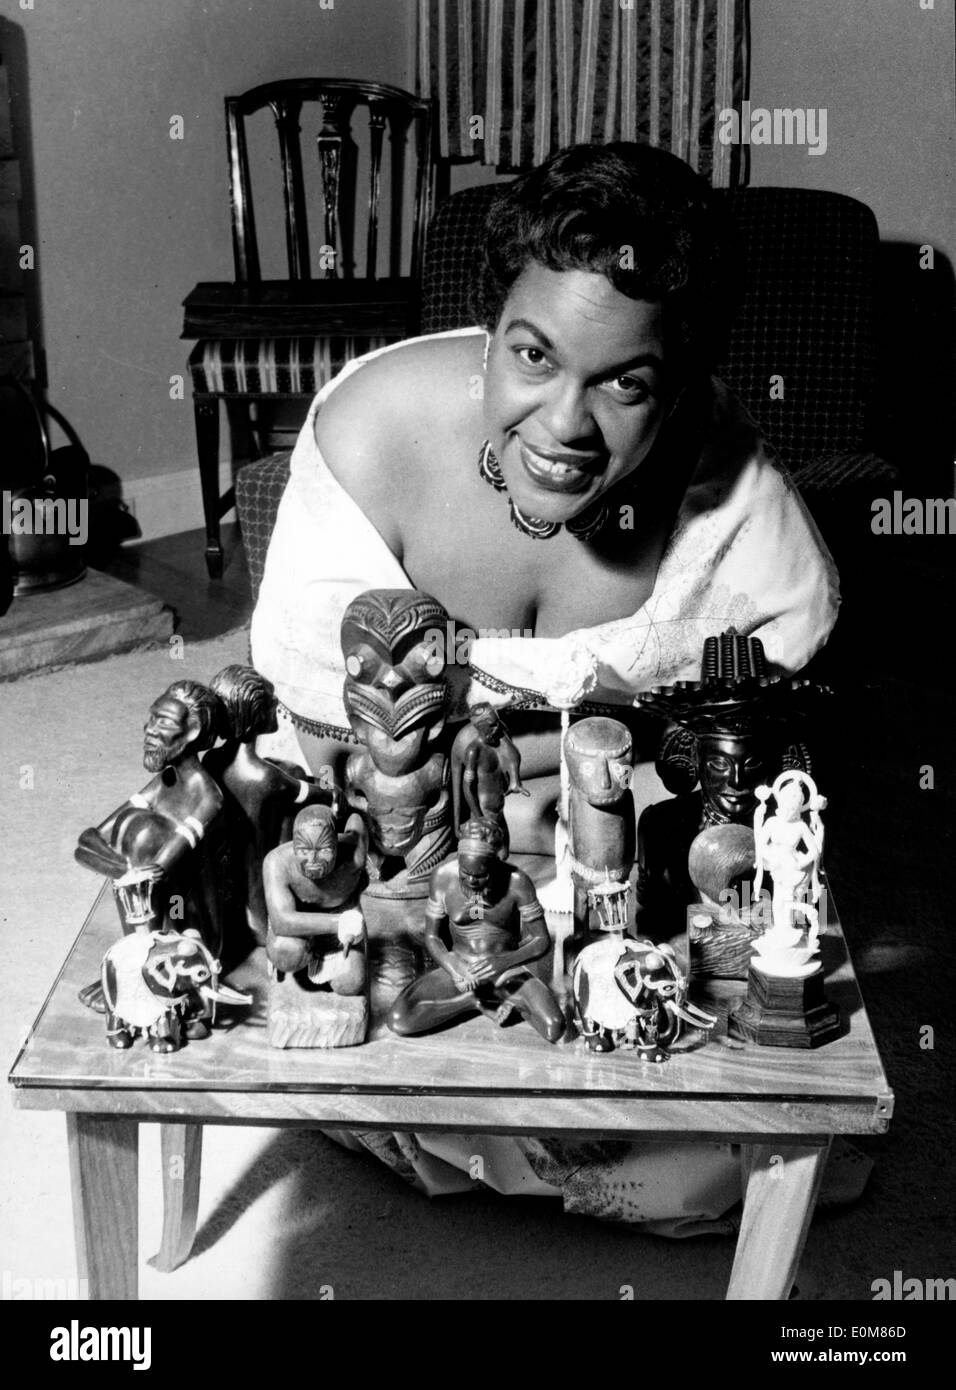 Winifred Atwell with her collectibles from her travels - Stock Image